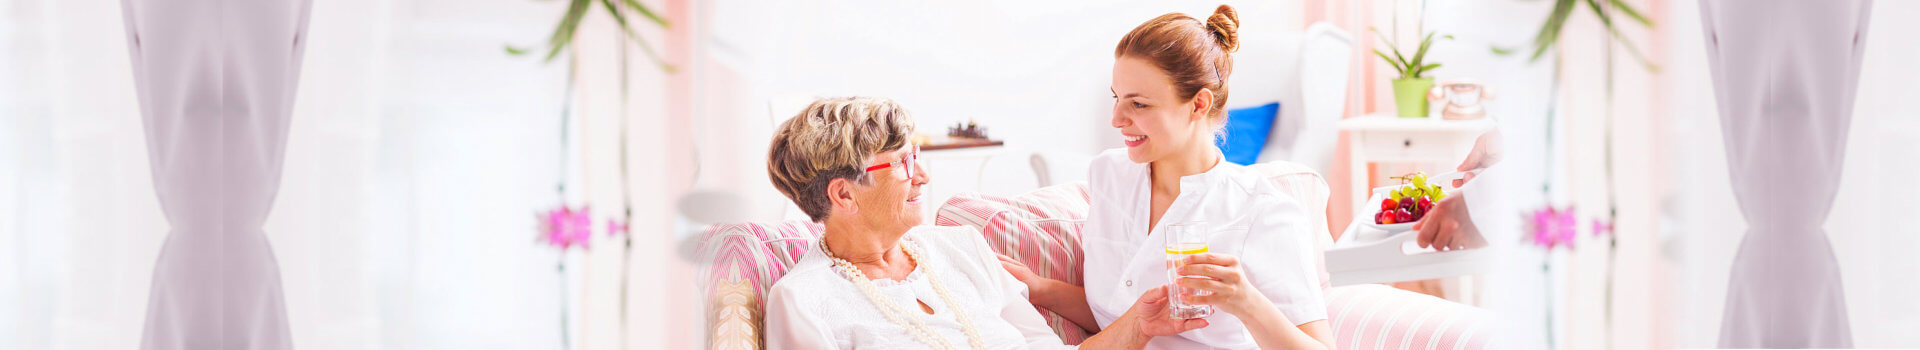 caregiver taking care of a senior